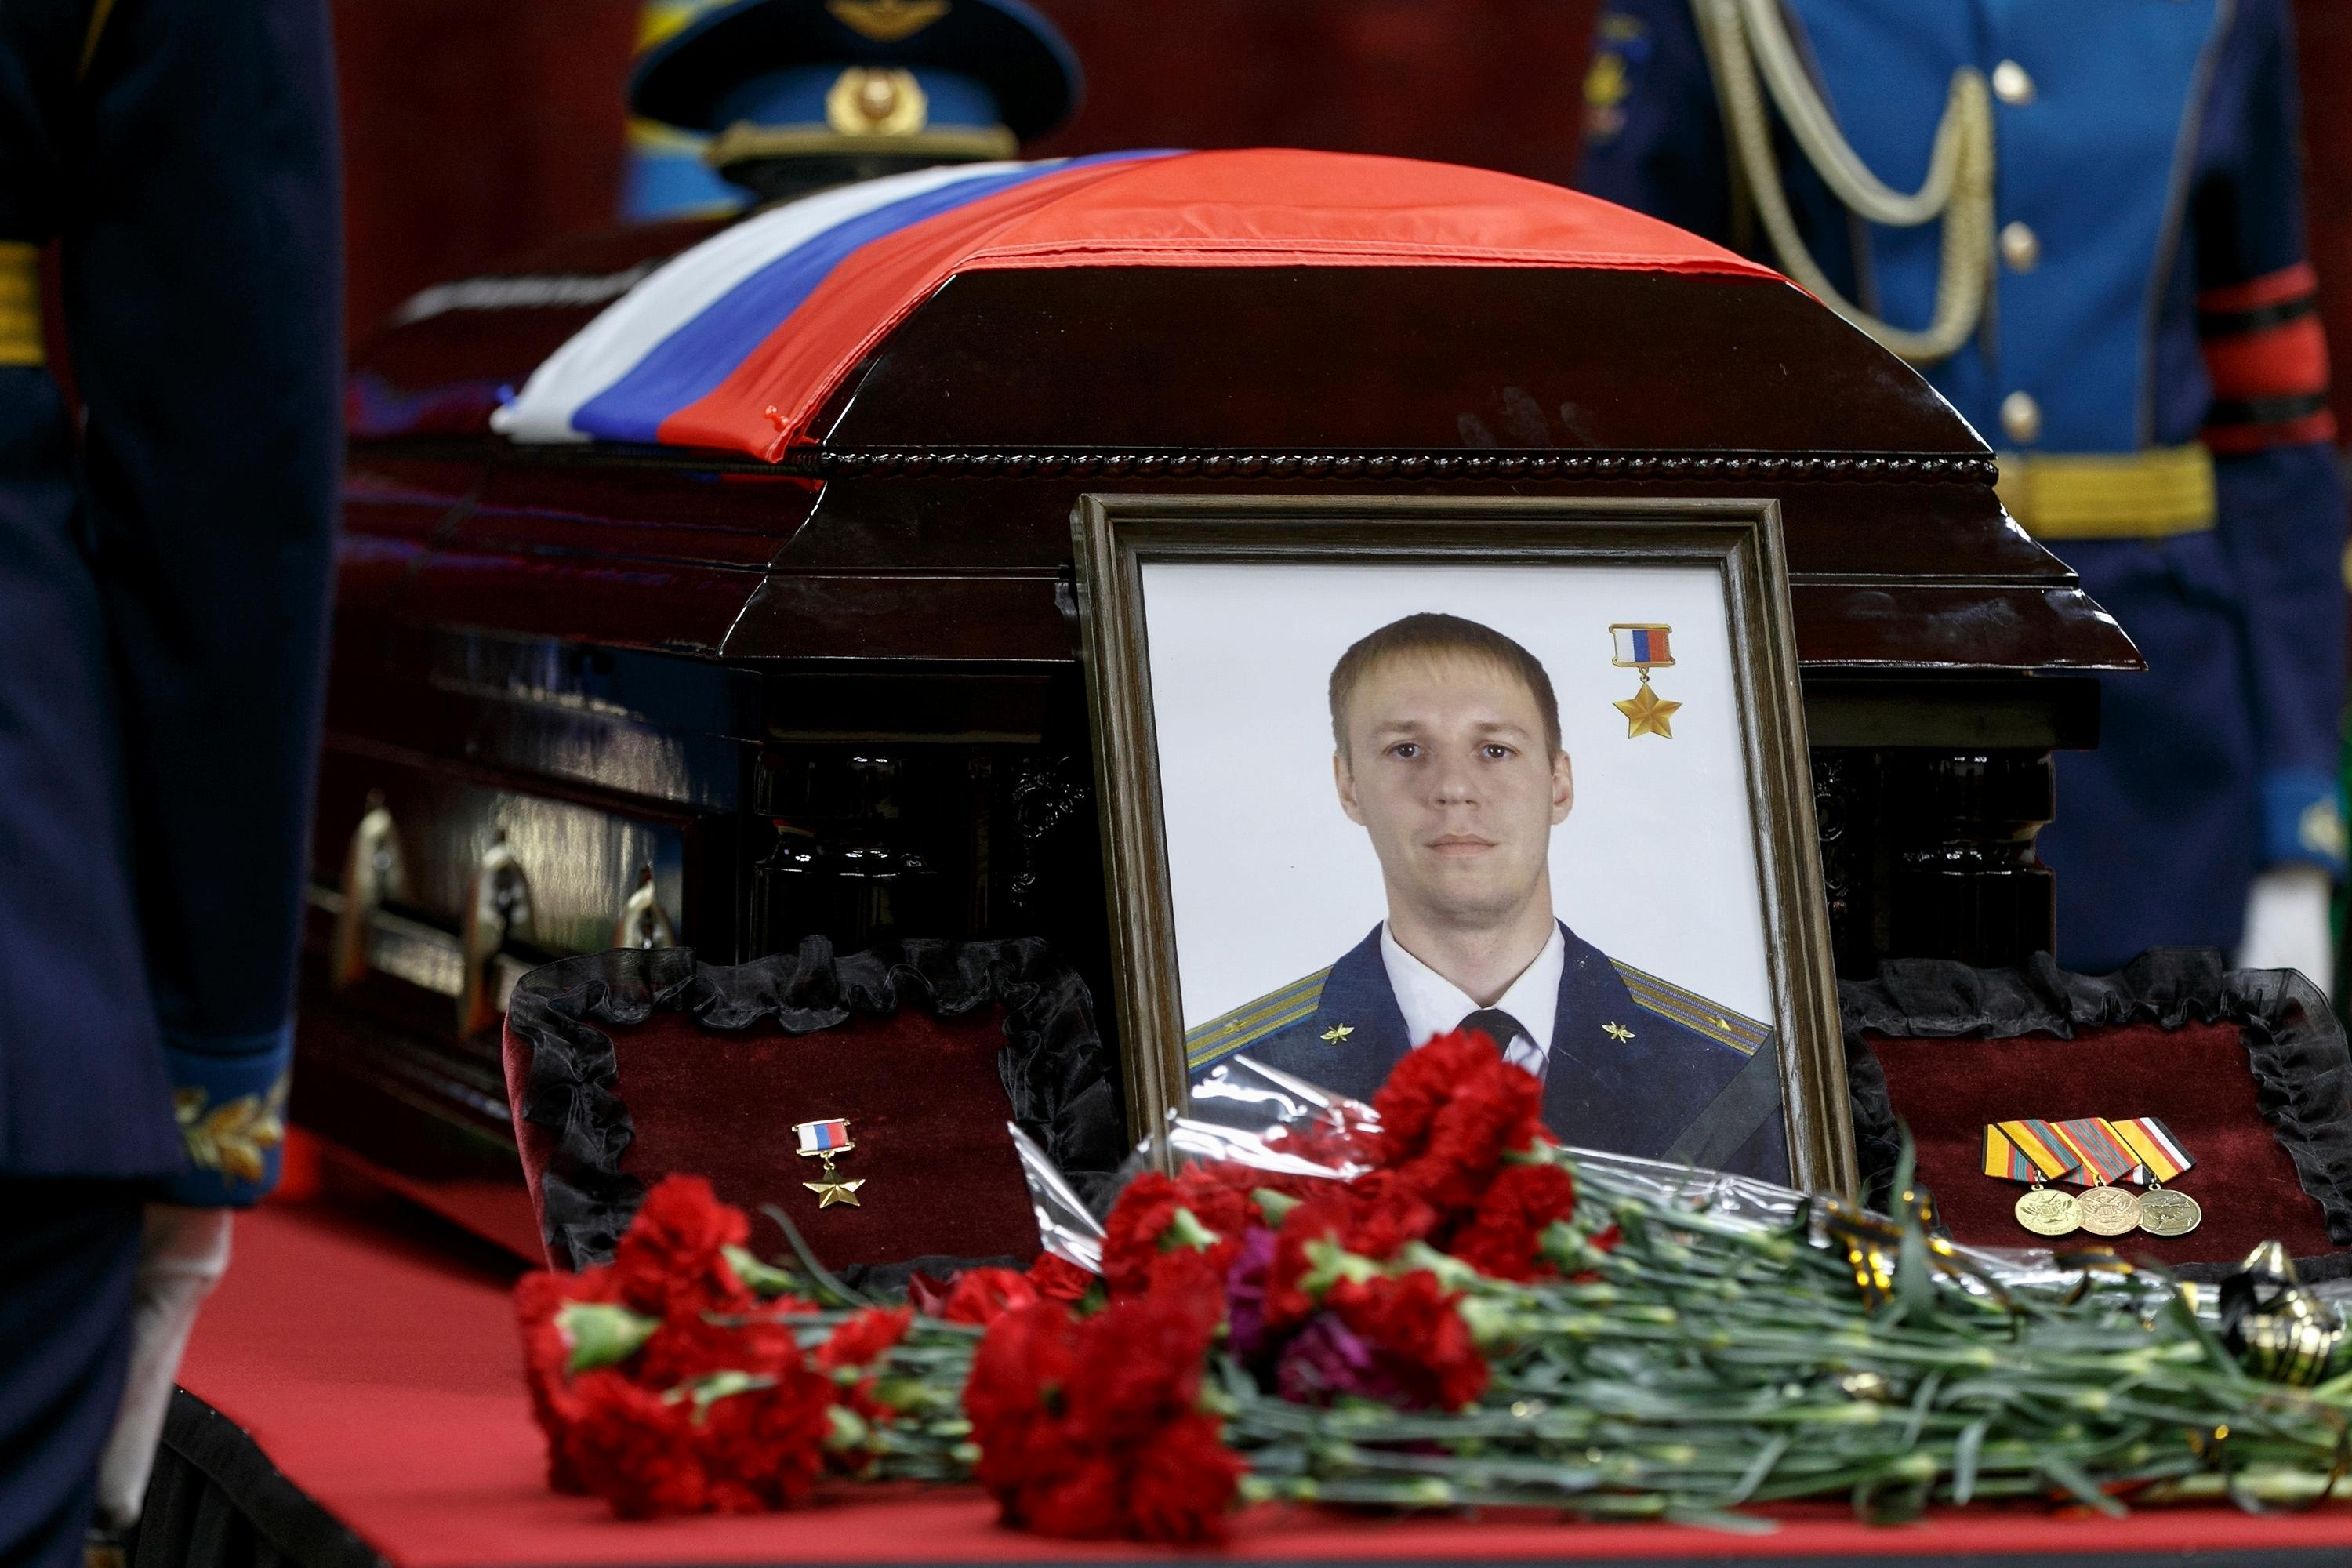 Russian honorary guards stand next to a coffin with the body of Russian Roman Filipov, the pilot of the Su-25 jet who ejected after Syrian insurgents shot down his plane traded fire with militants on the ground and then blew himself up to avoid being captured, during a funeral service in Voronezh, Russia, Thursday, Feb. 8, 2018. (Vadim Savitsky/Pool Photo via AP)